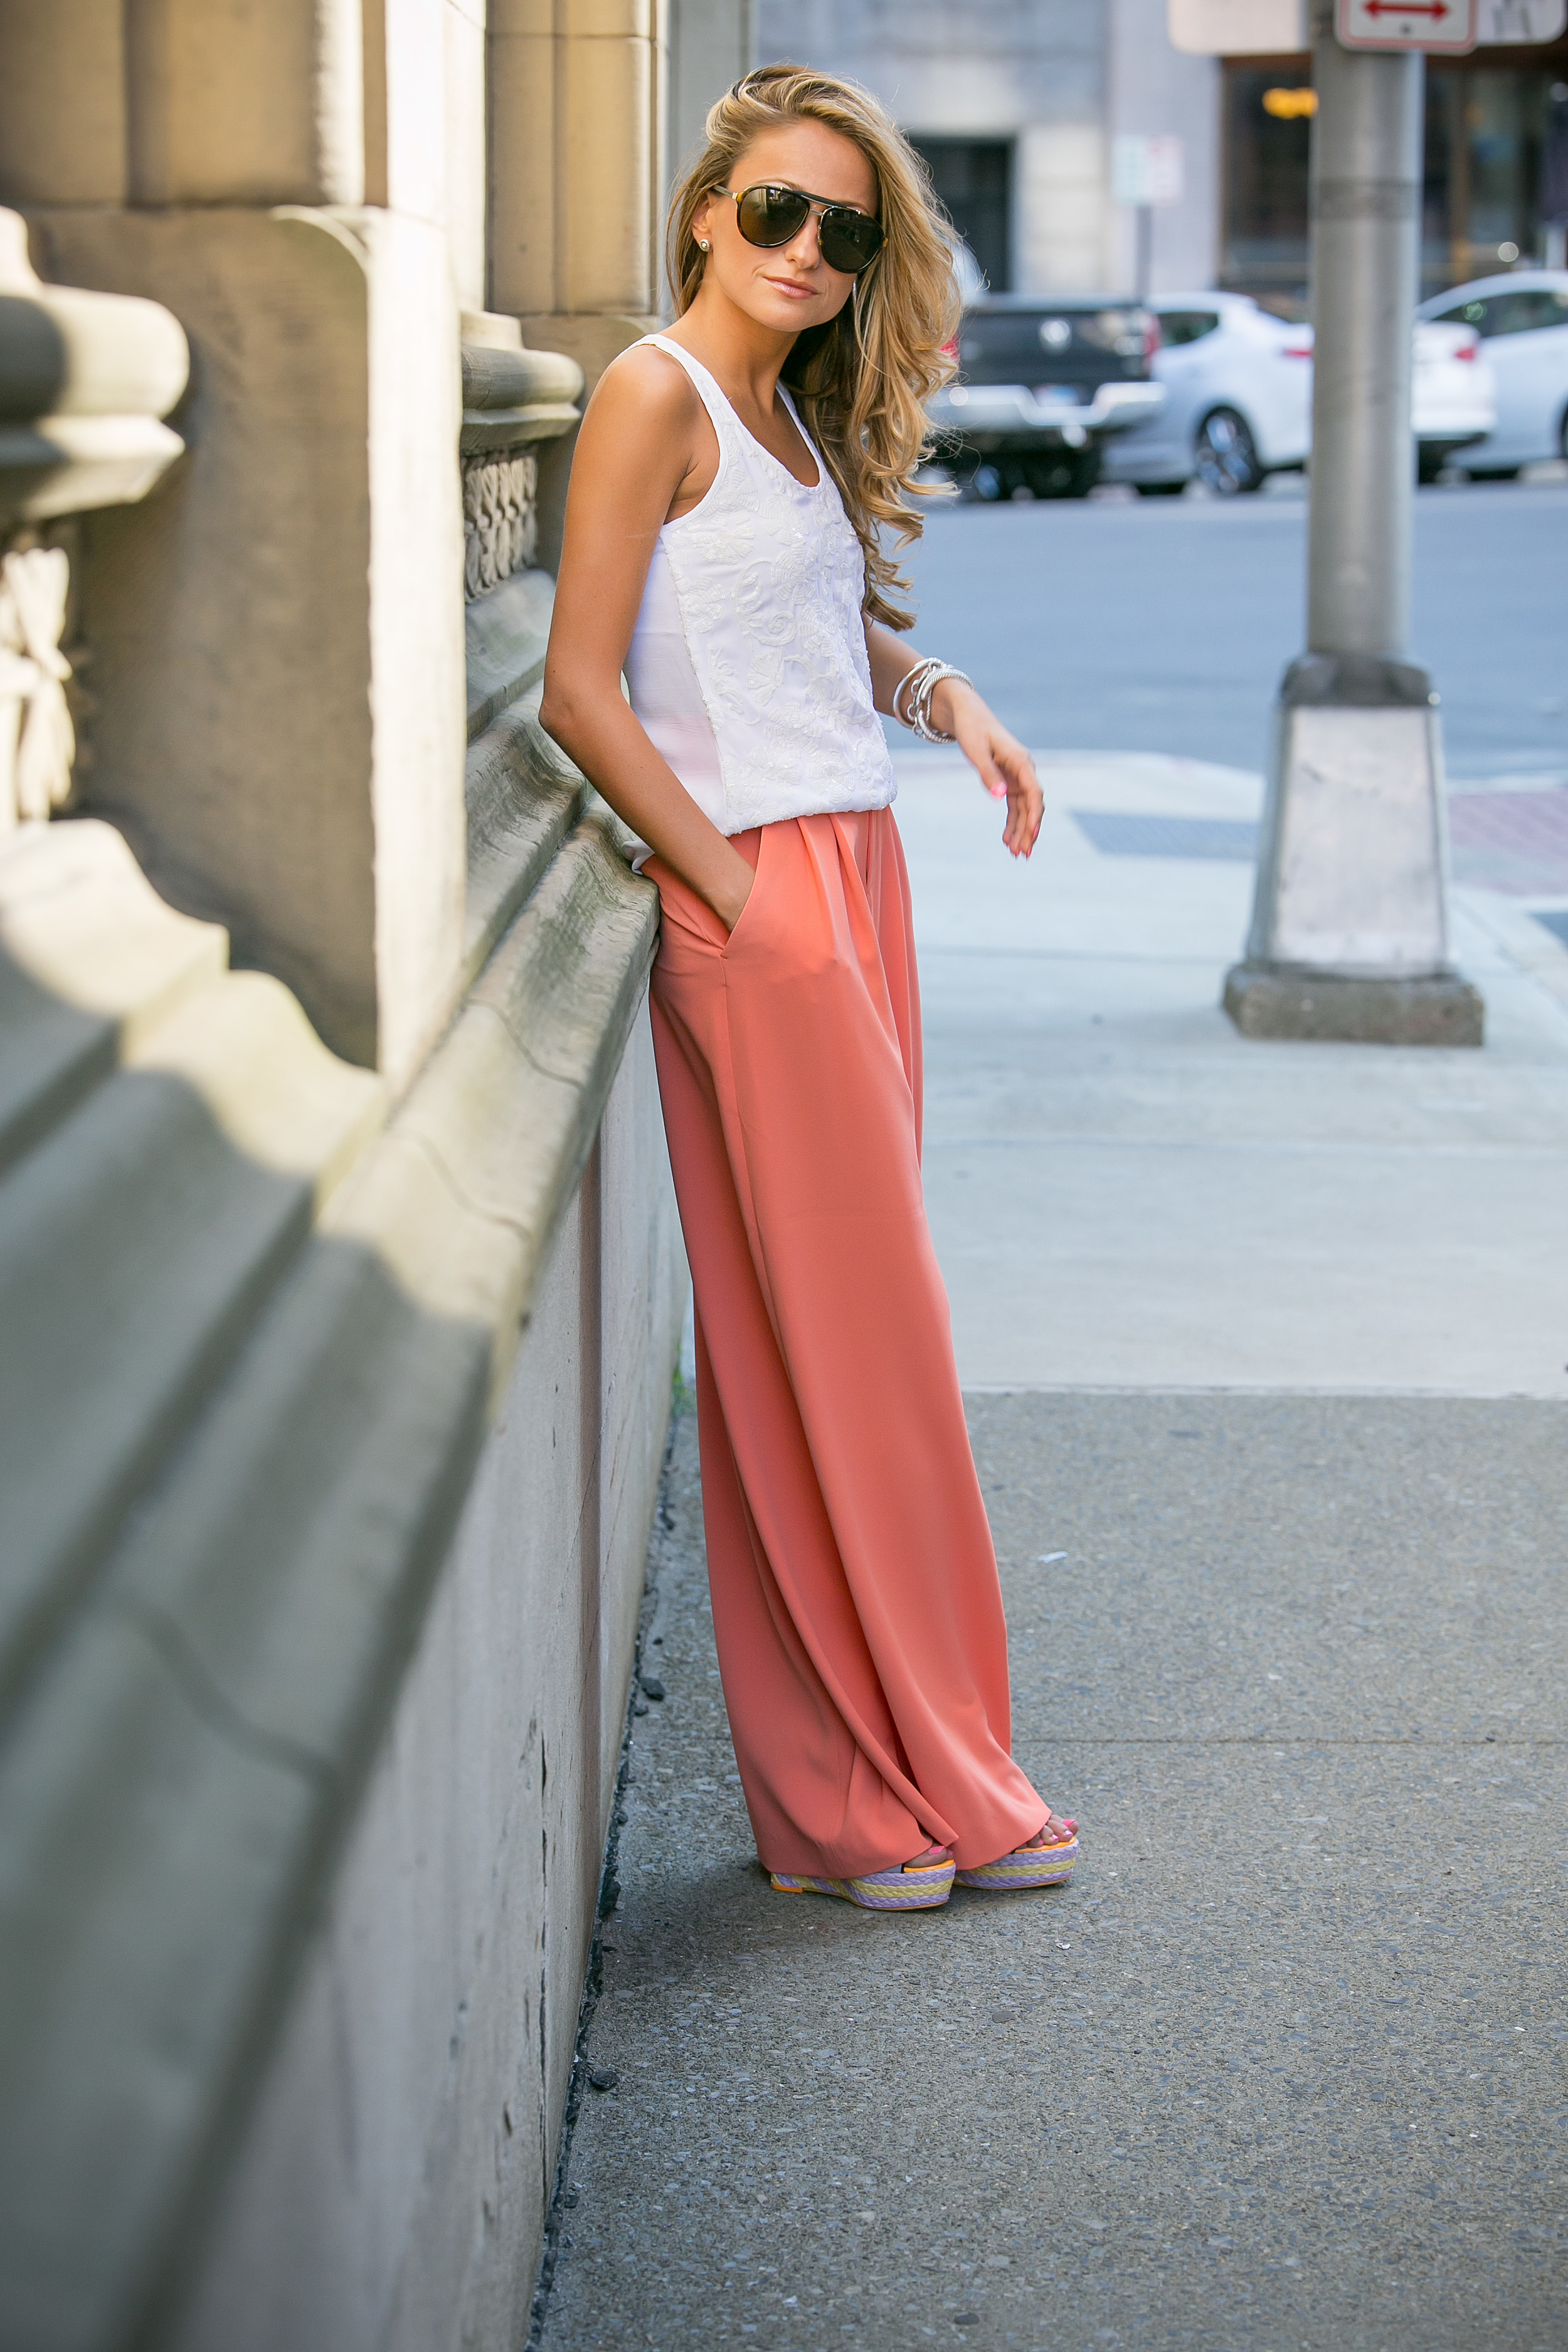 Fashion blogger North of Manhattan showing her street style in Alice and Olivia